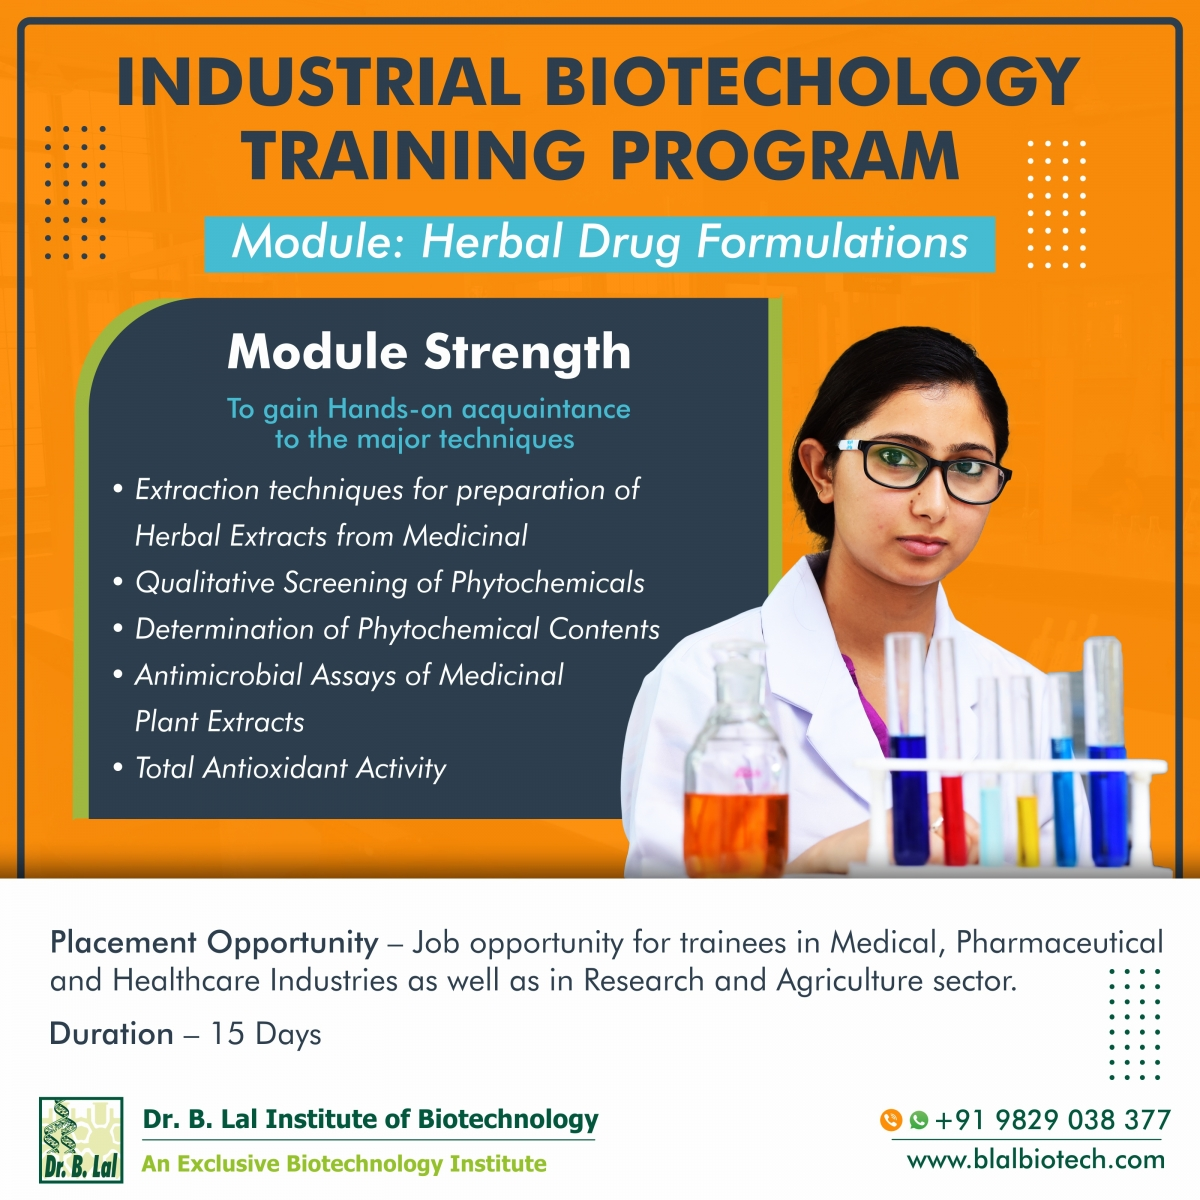 Industrial Biotechnology Training Program | Module: Herbal Drug Formulations